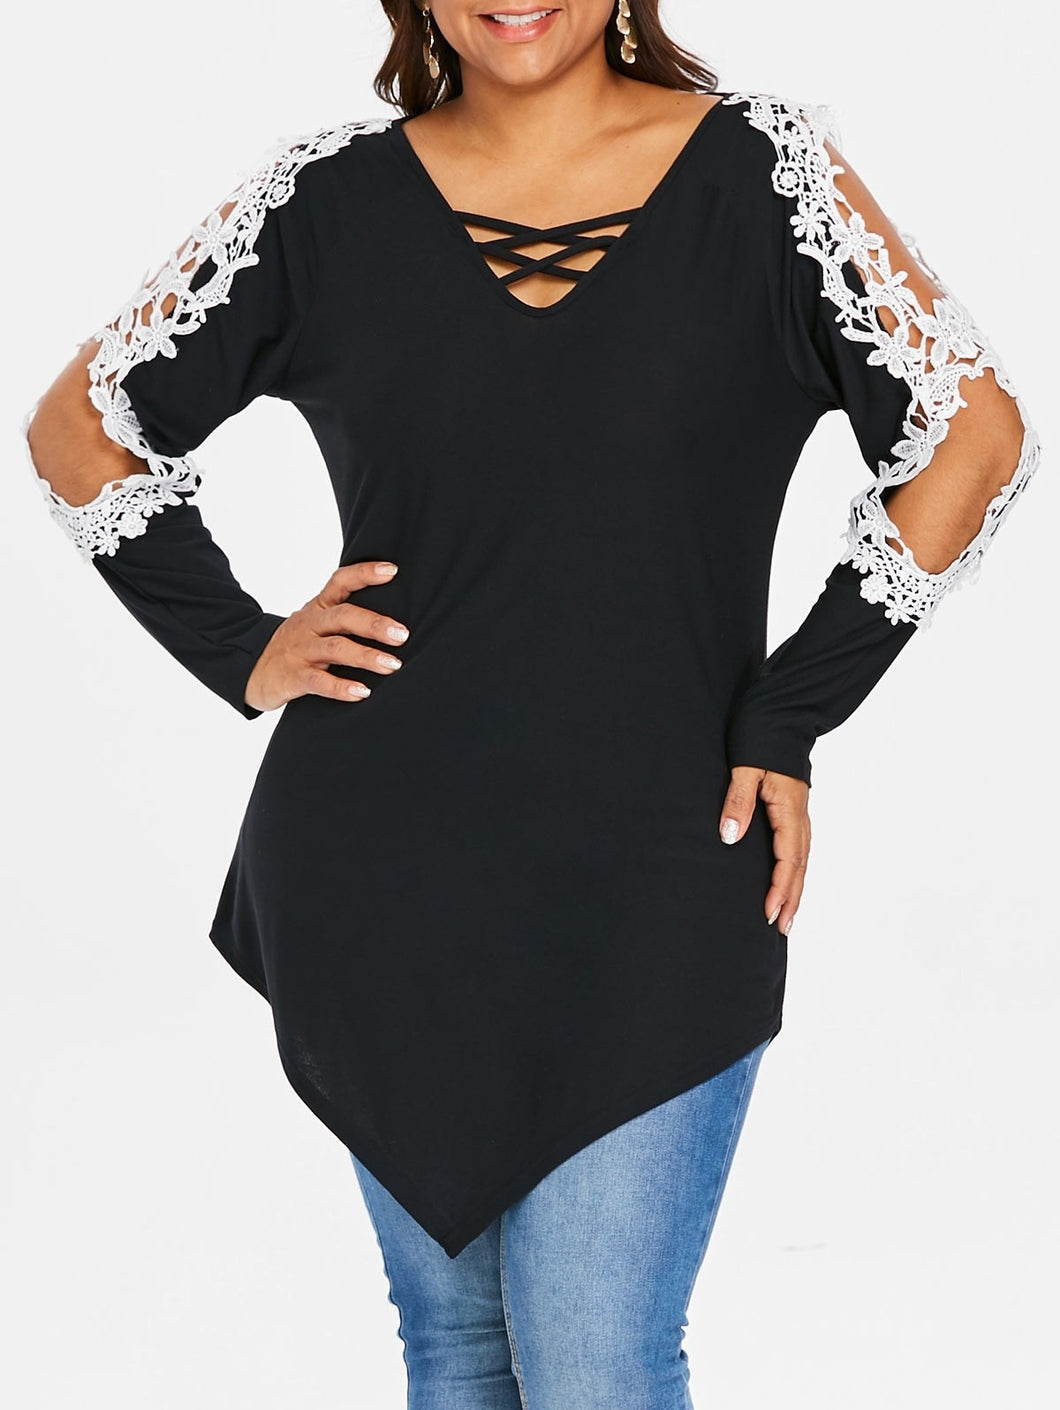 Plus Size Lace Hollow Out Lattice Long Sleeve Women Top 4429